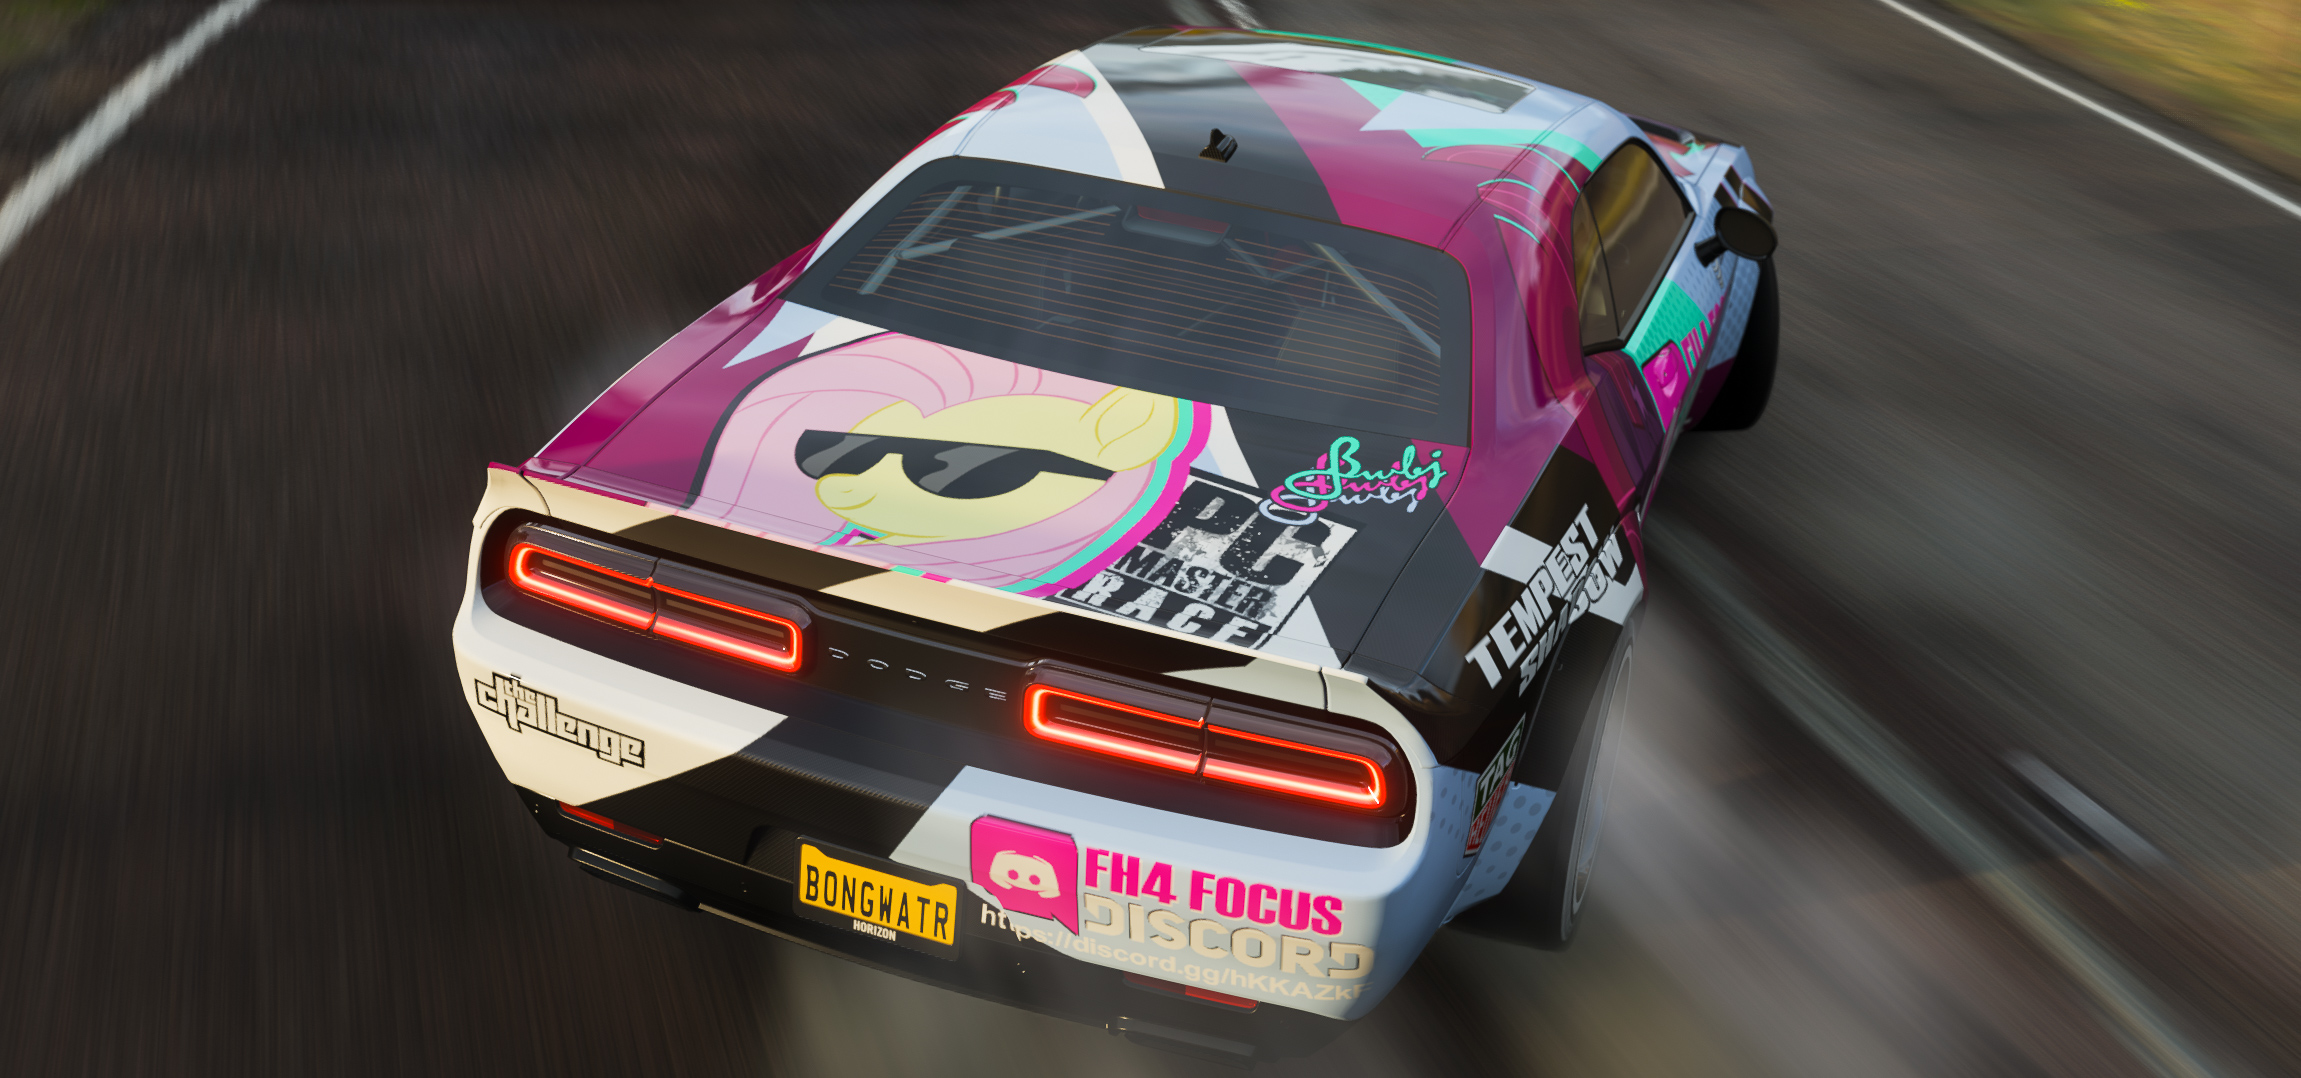 Challenger Livery